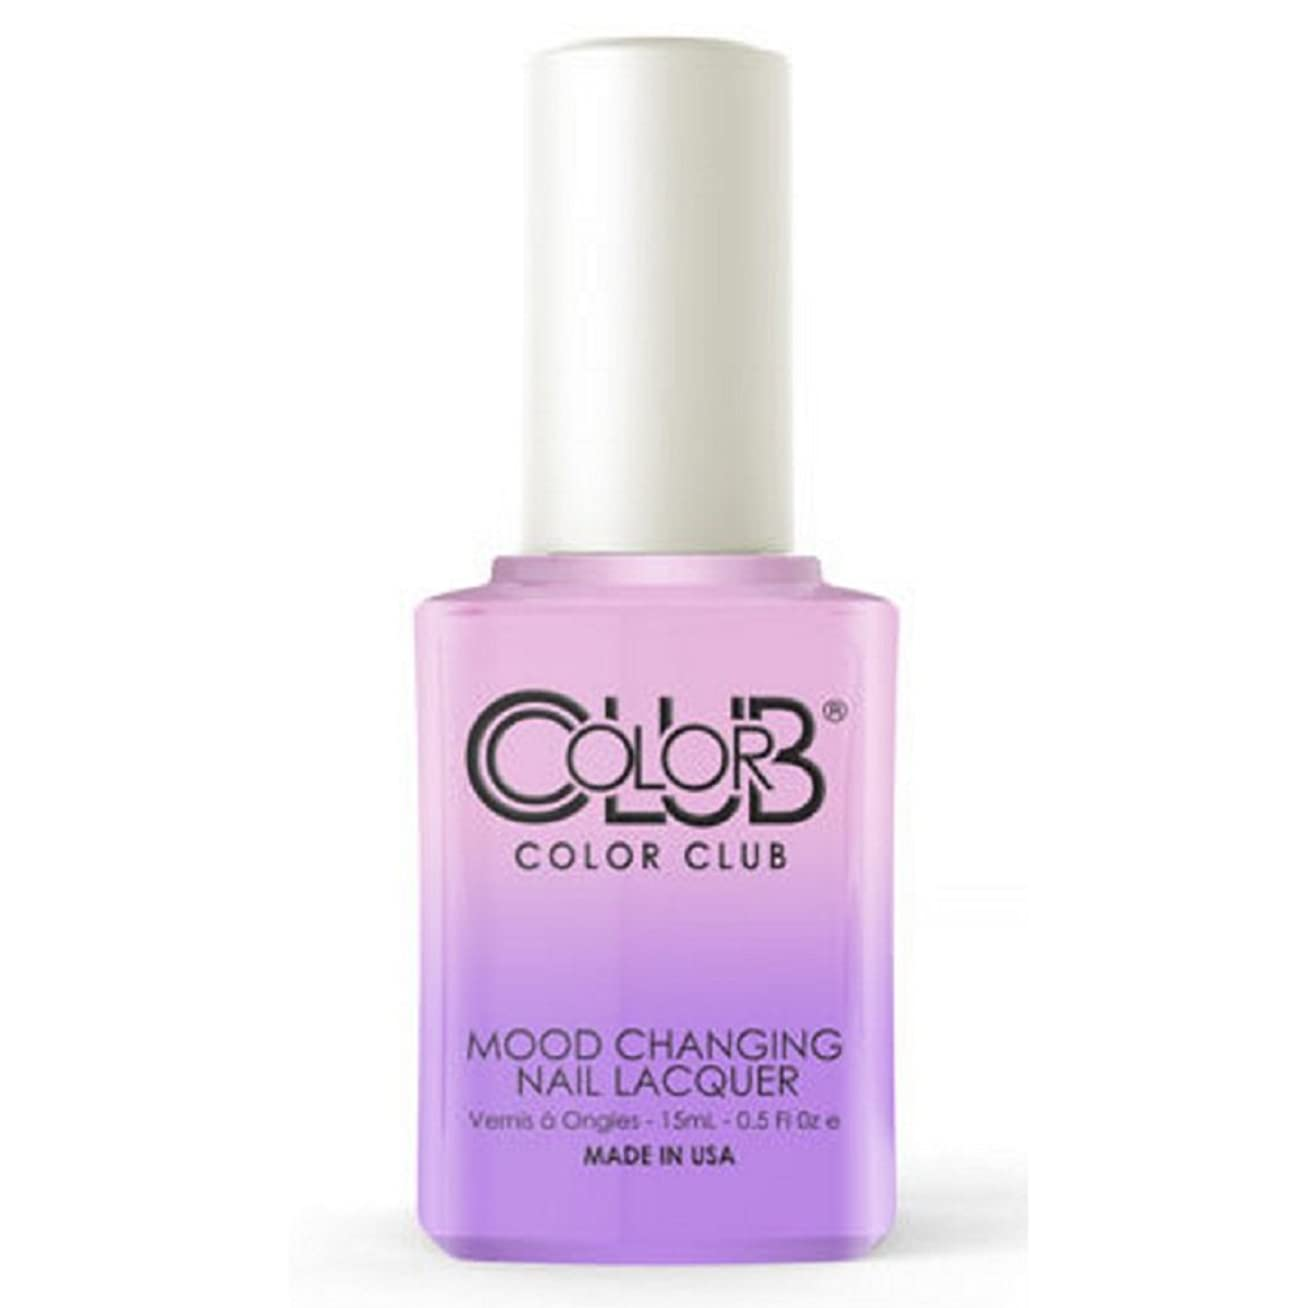 登録増加する信じられないColor Club Mood Changing Nail Lacquer - Go with the Flow- 15 mL / 0.5 fl oz